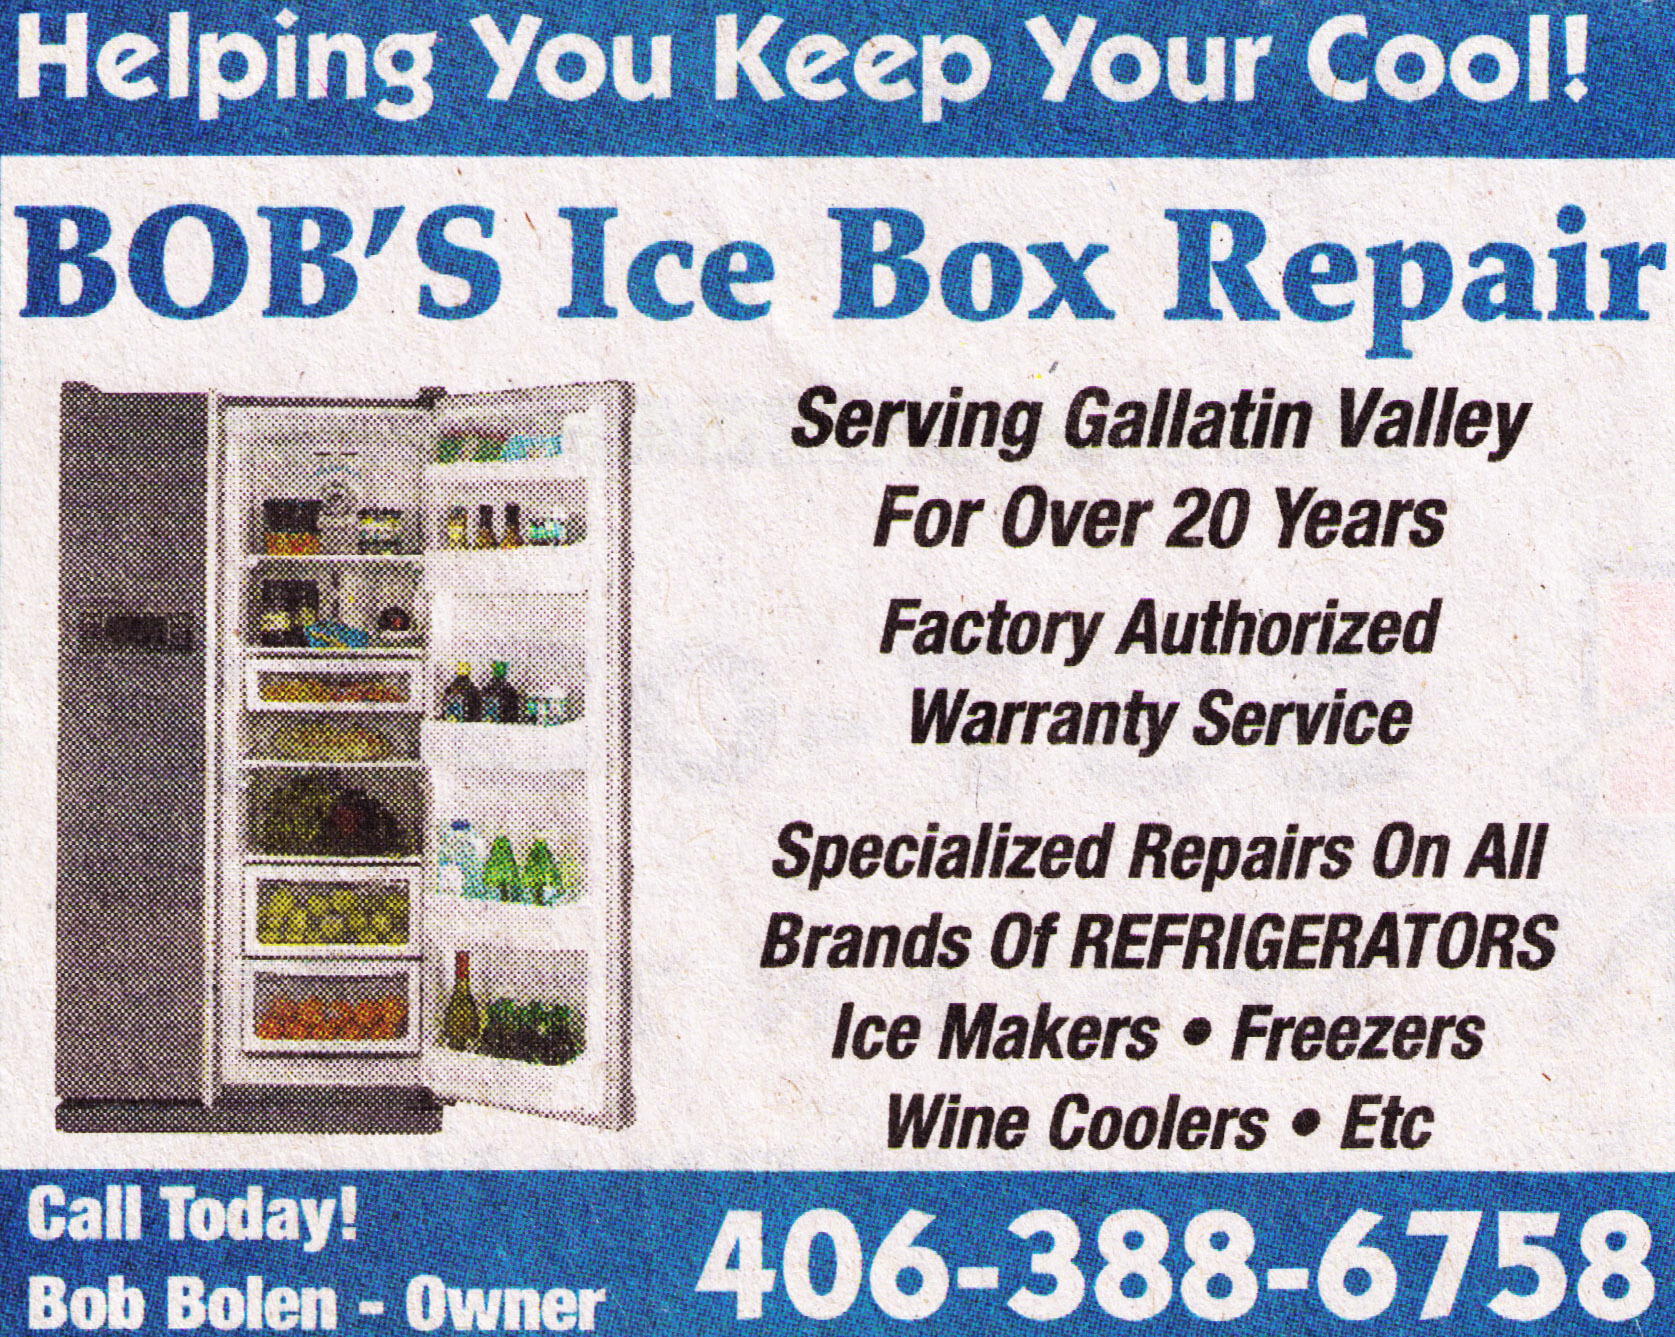 Bob's Icebox Repair - Repairing All Brands of Refrigerators, Freezers, Ice-makers, and Wine Coolers for Over 20 Years - Contact Information